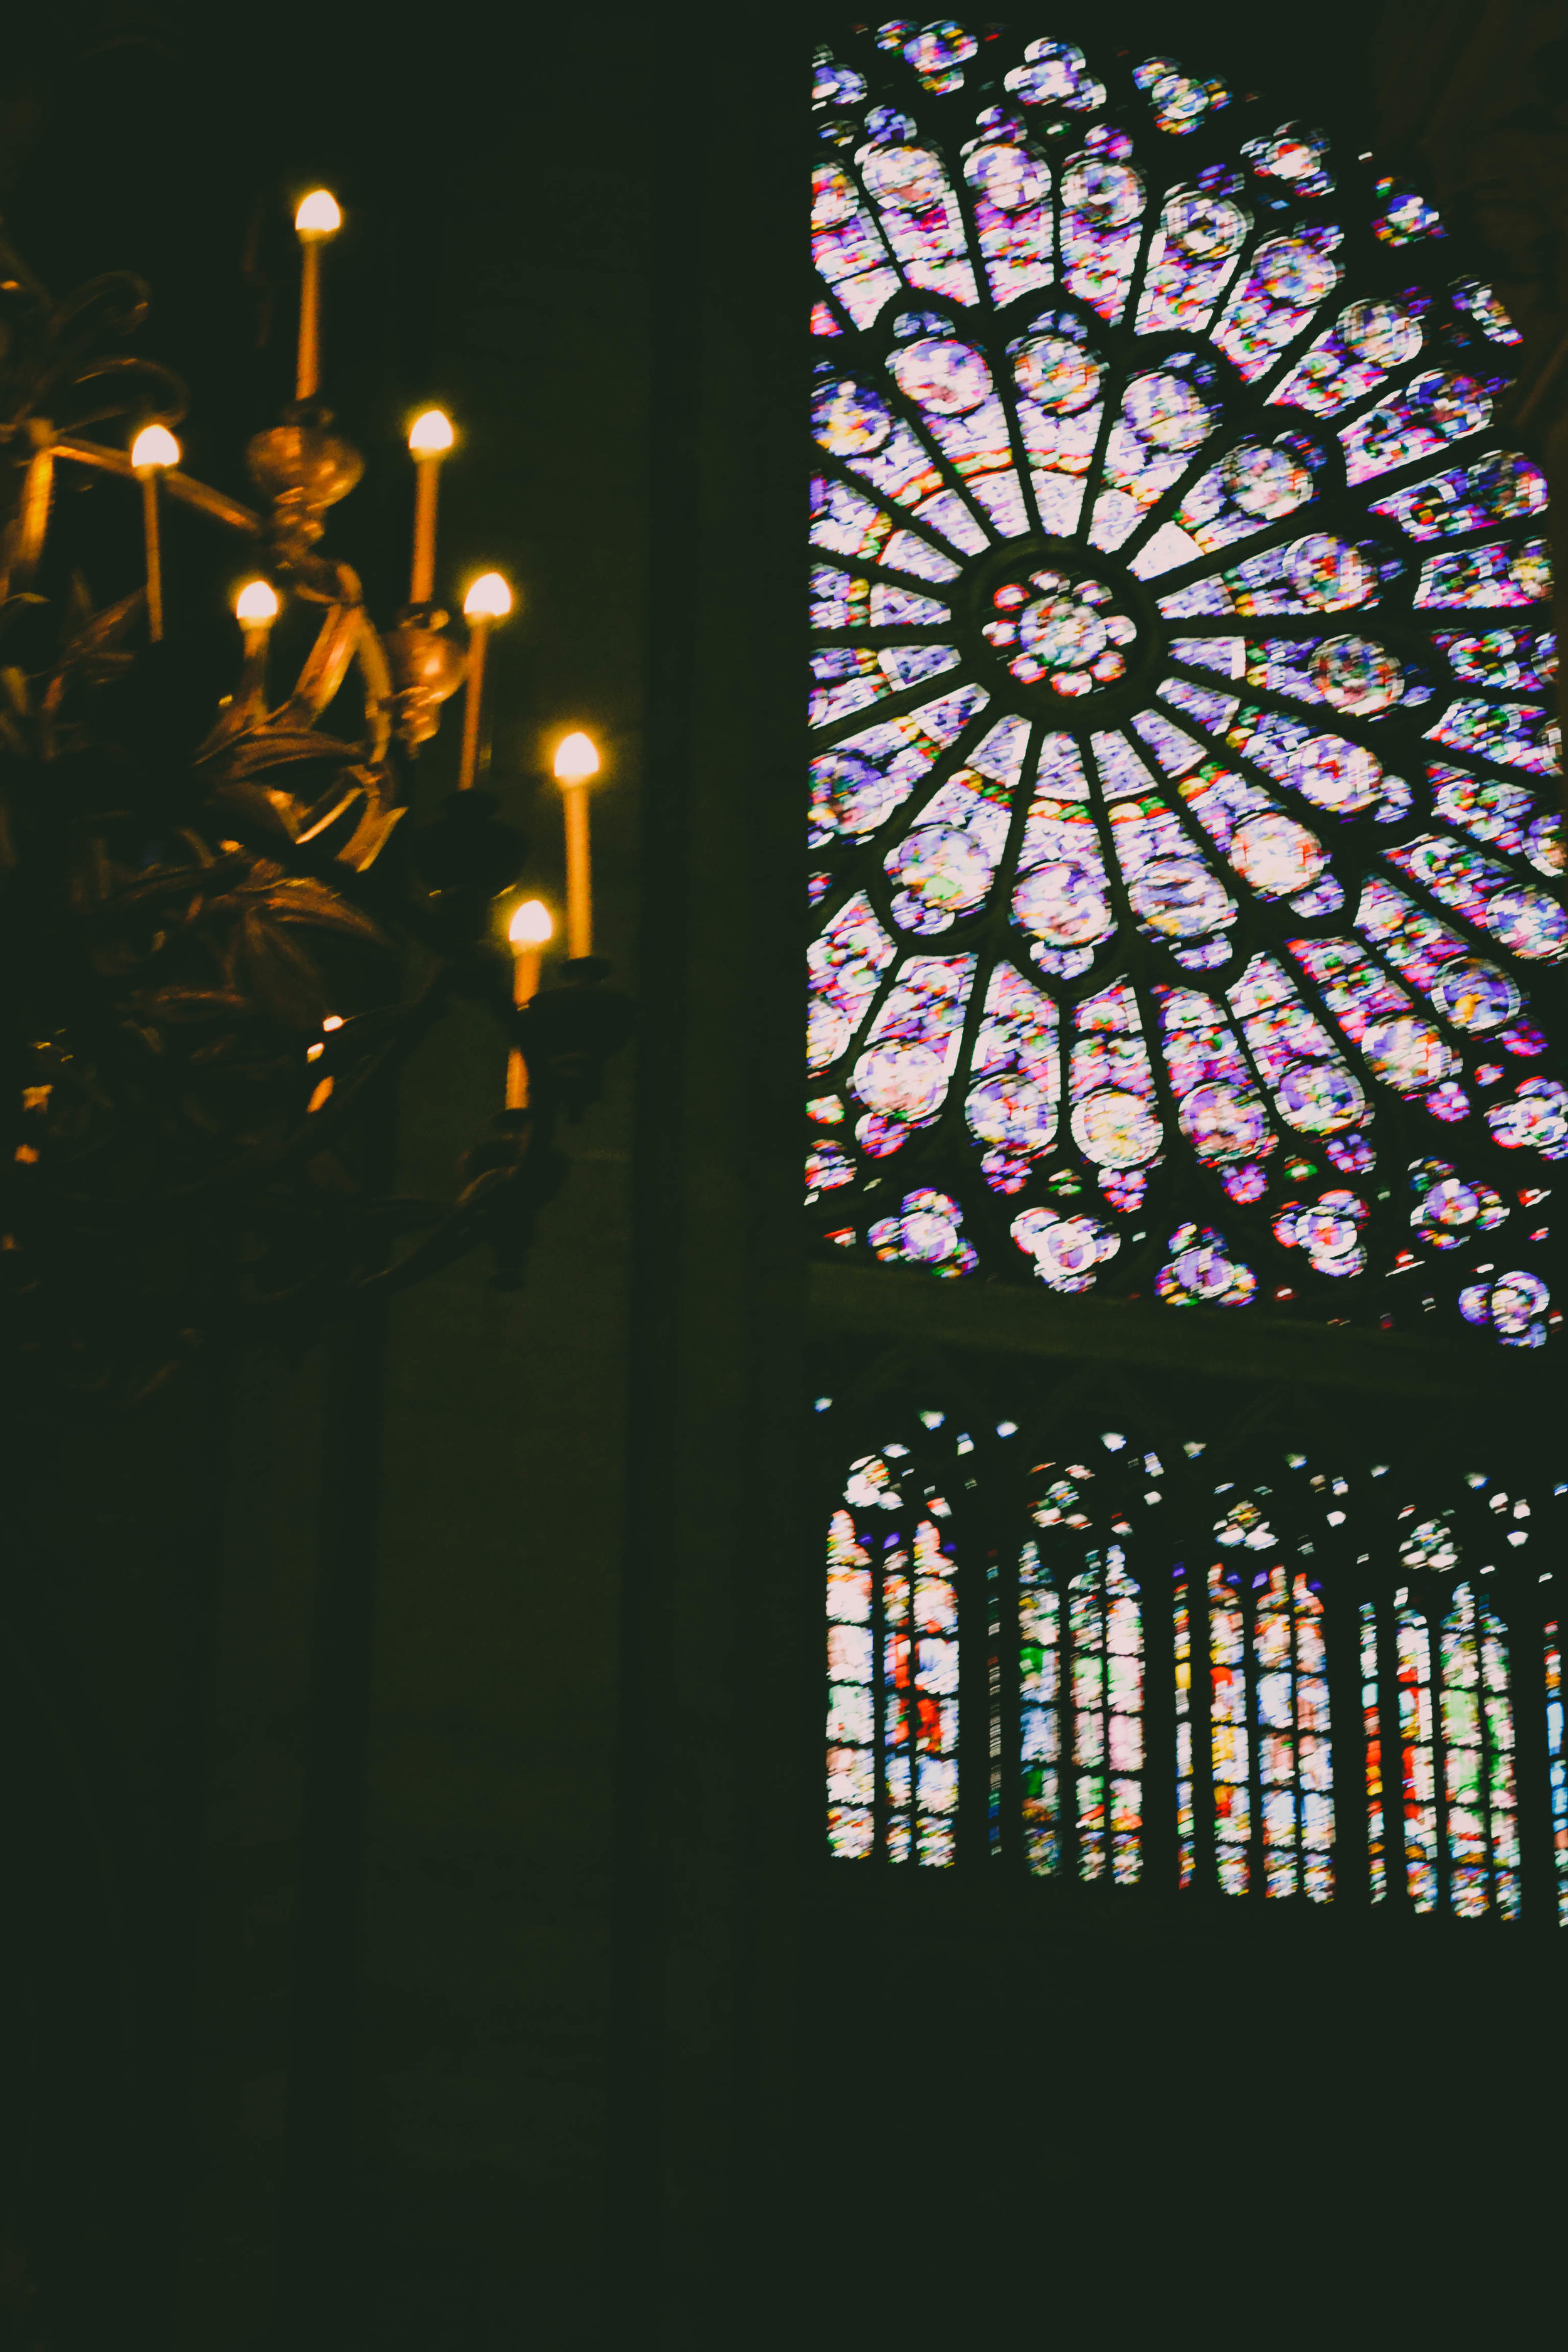 Notre-dame catedral from inside.  paris. france.